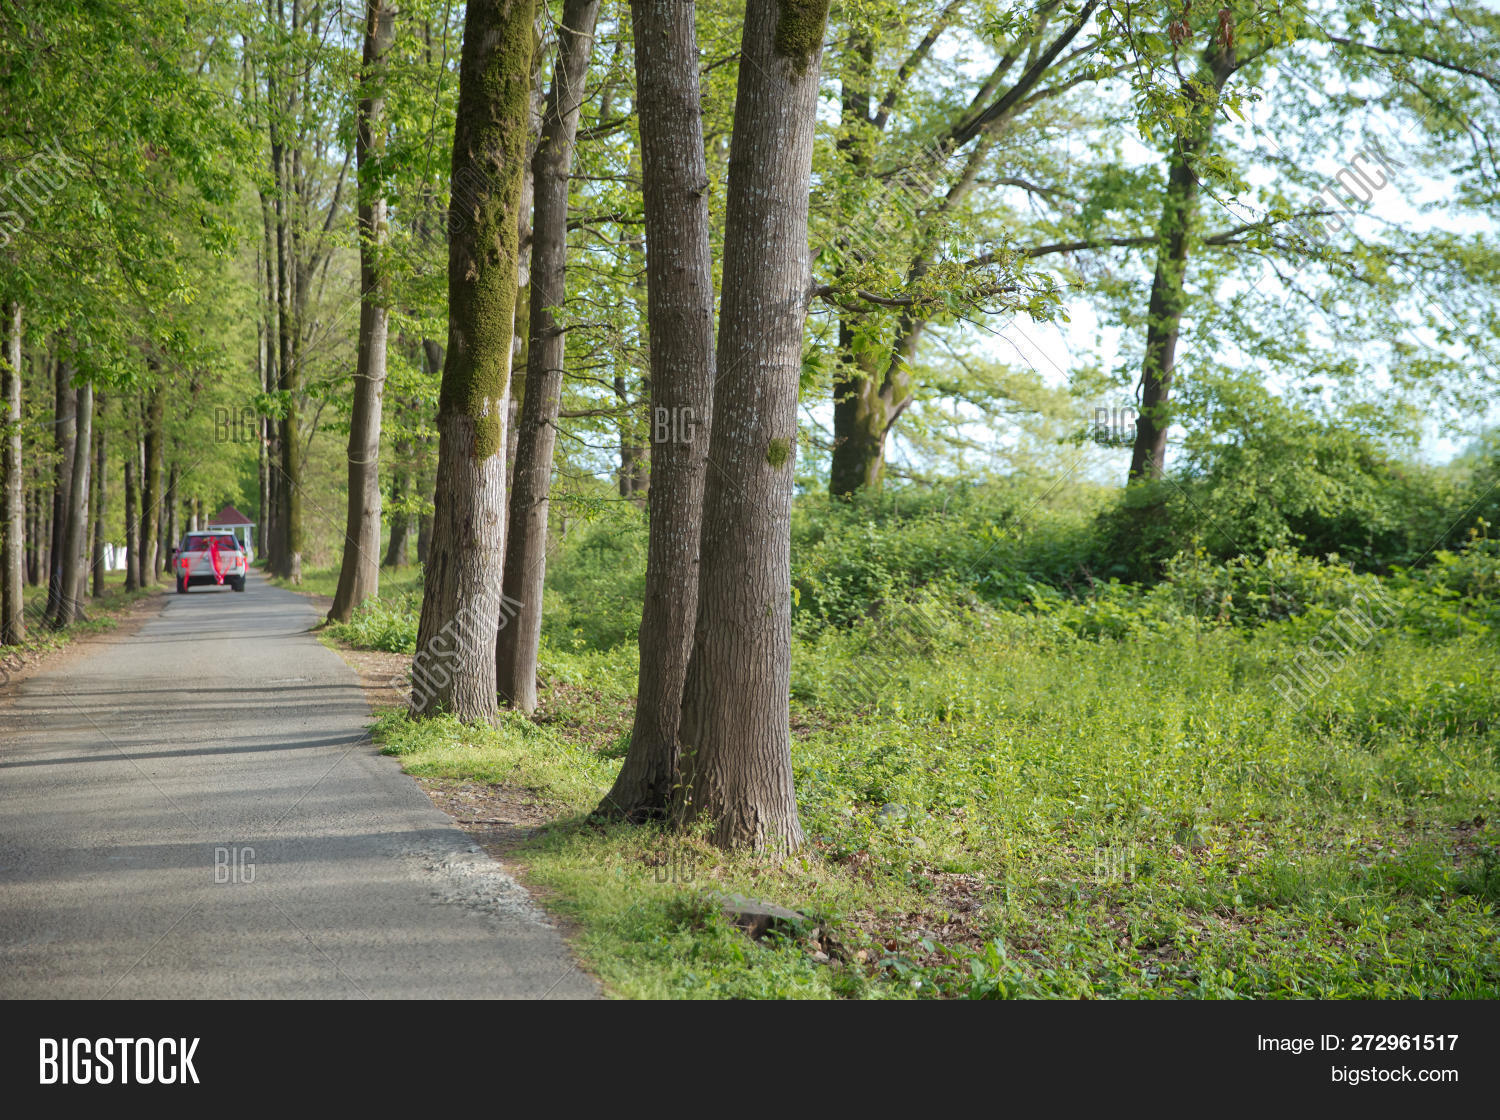 Machine Path Forest   Image & Photo (Free Trial) | Bigstock